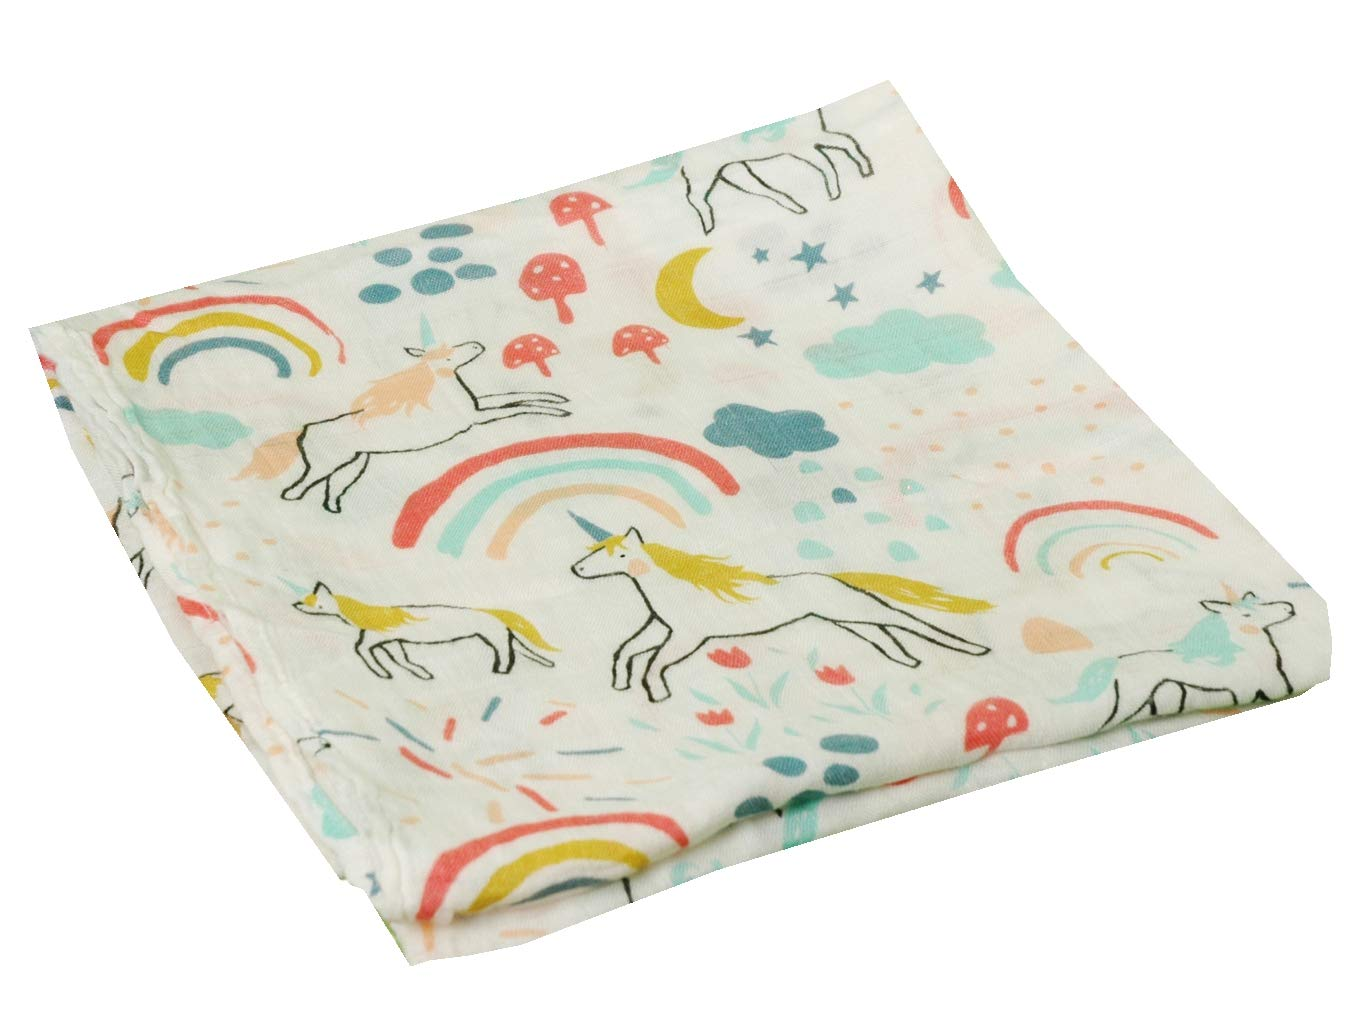 HGHG Baby Muslin Swaddle Blanket Your Receiving Blanket for Boys and Girls 47inches (Lovely Unicorn)